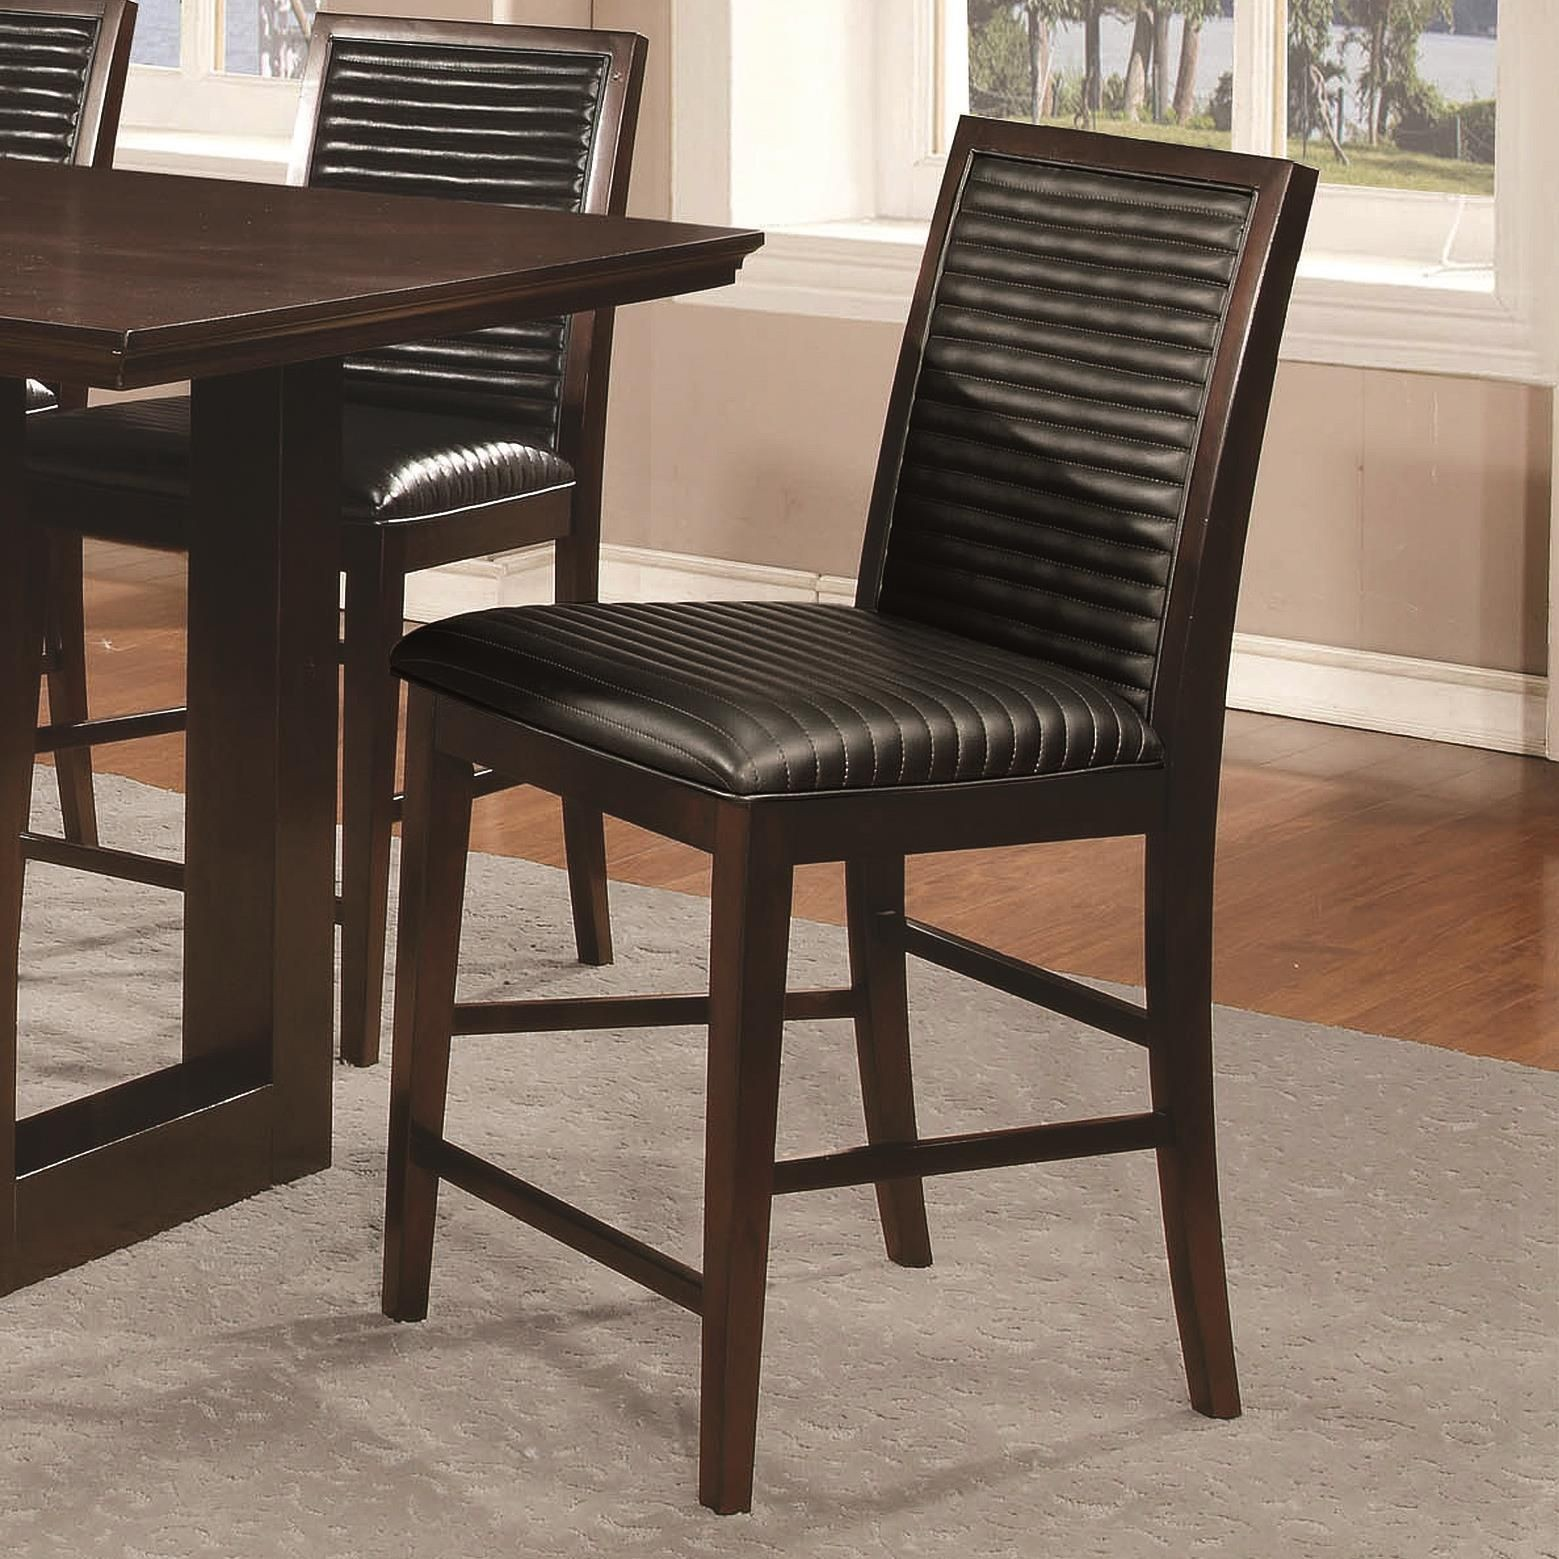 Chester Upholstered Counter Height Chair Set of 2 from Coaster (105727 ...